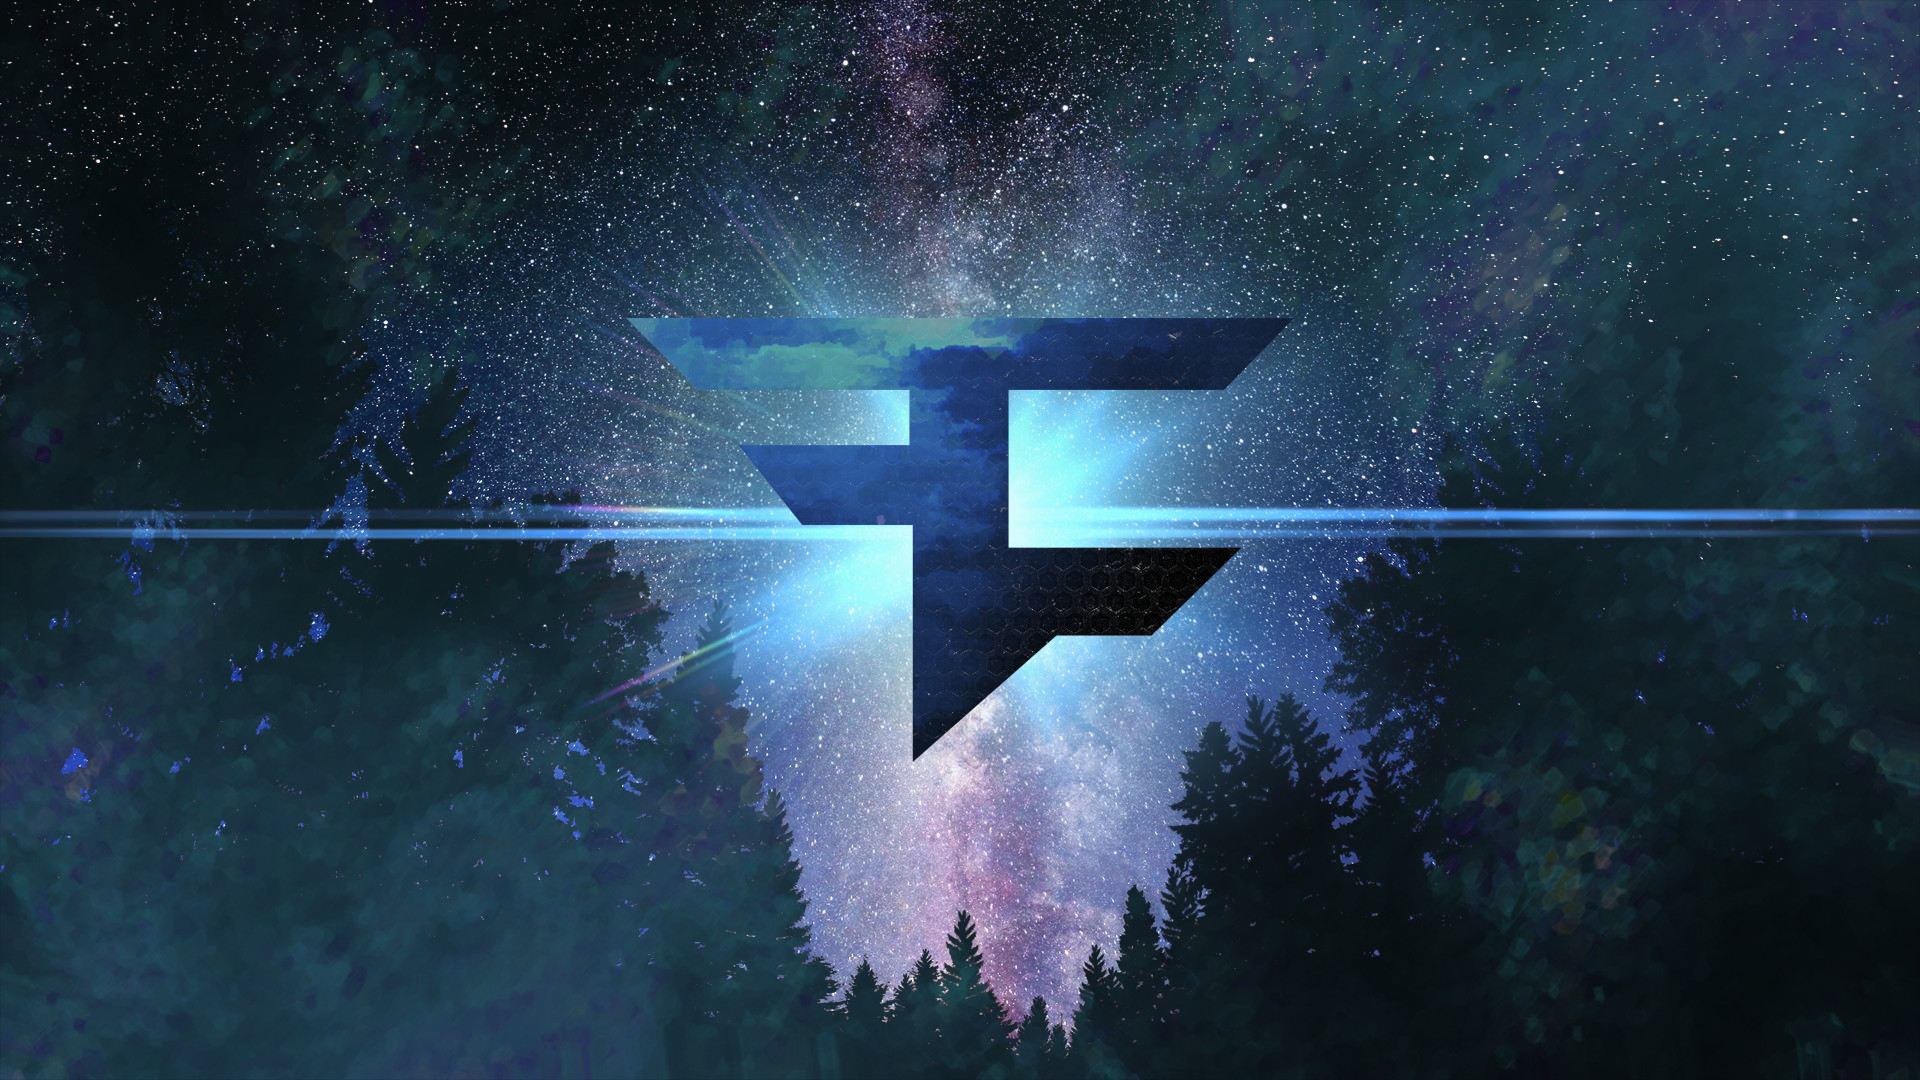 Res: 1920x1080, FaZe wallpaper galaxy edition! by FearFoxDesigns FaZe wallpaper galaxy  edition! by FearFoxDesigns